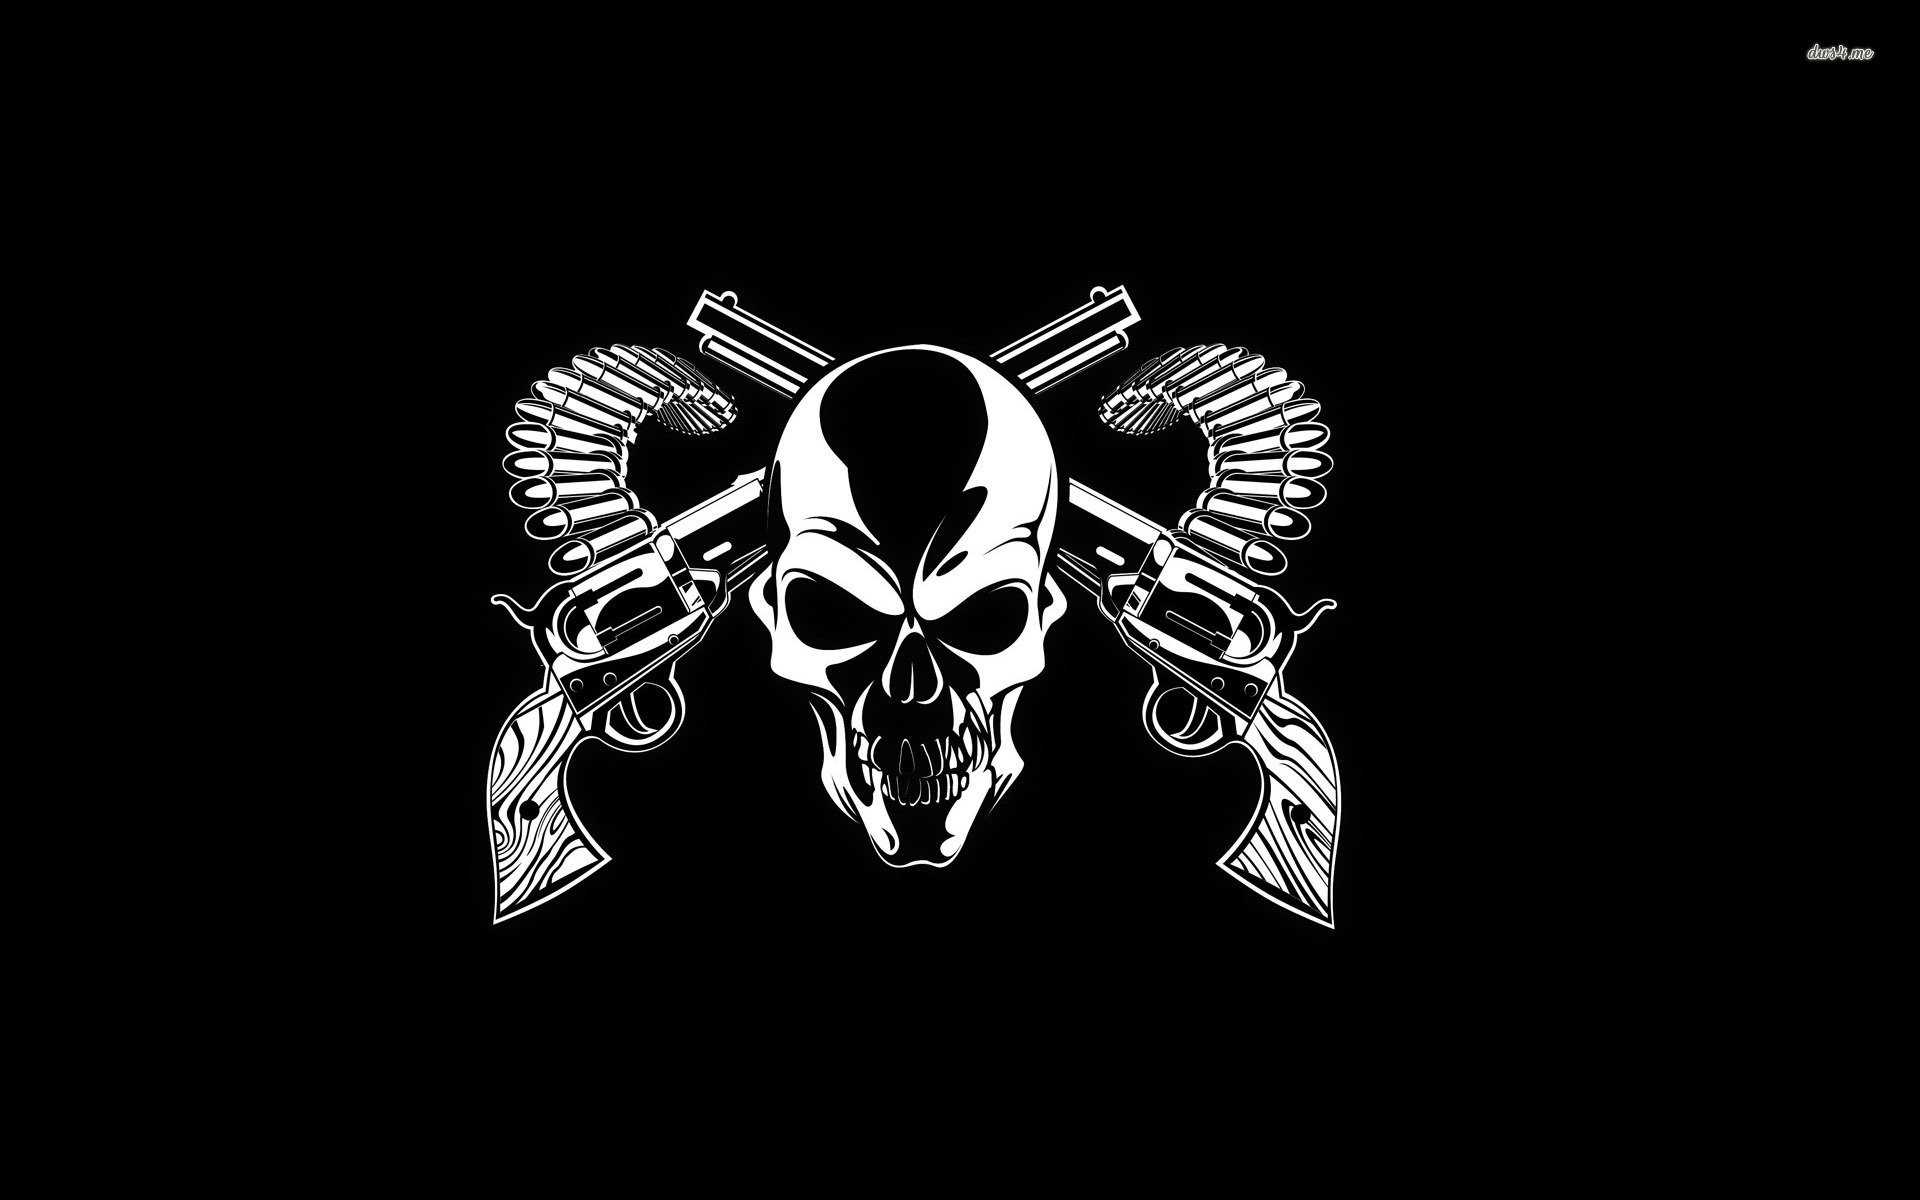 Wallpaper iphone guns n roses – Guns And A Skull 705407